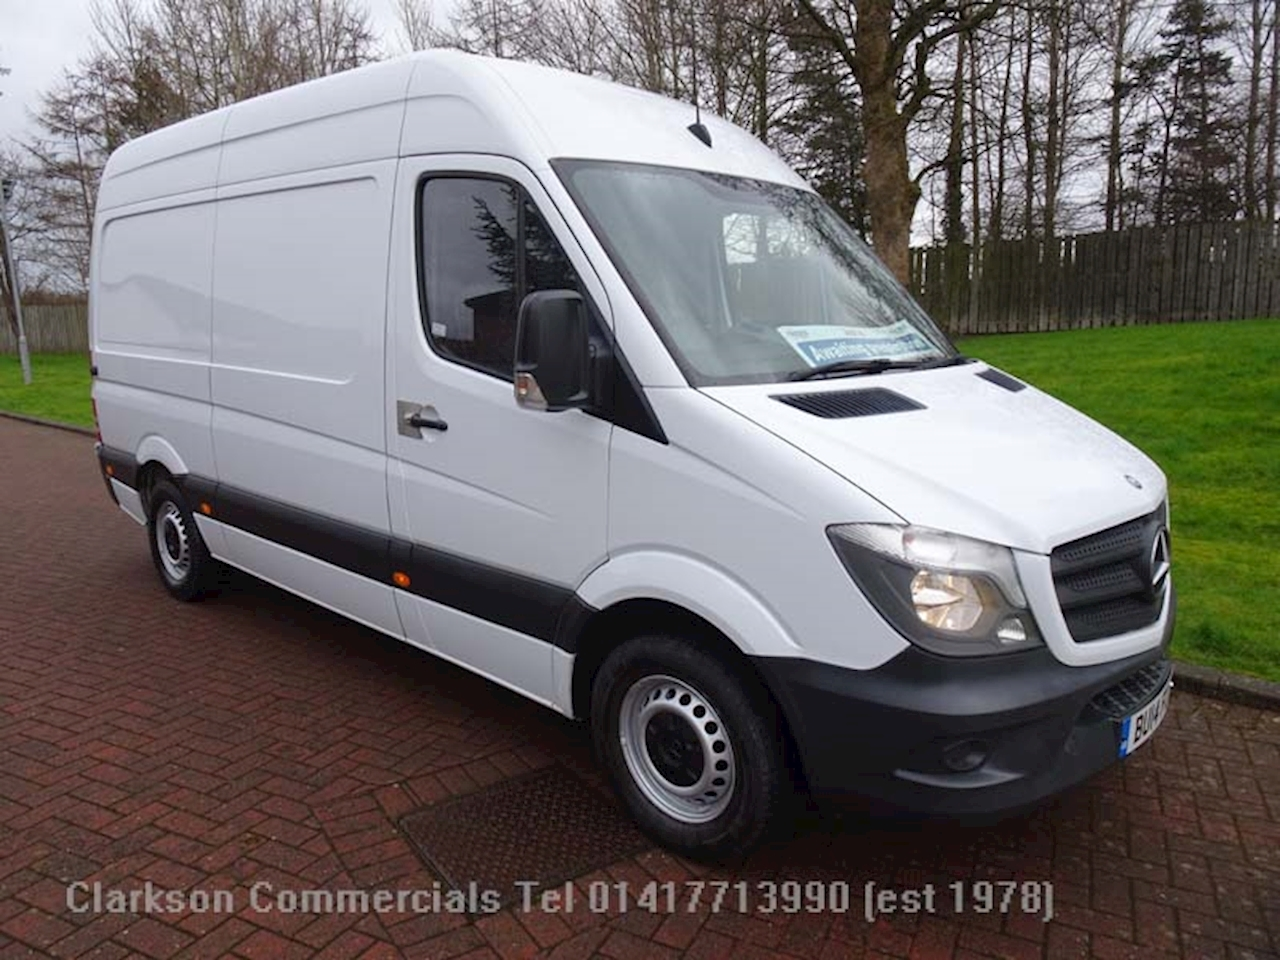 Mercedes-Benz Sprinter 313 Cdi  Medium wheelbase / medium roof, 2.1 Panel Van Manual Diesel